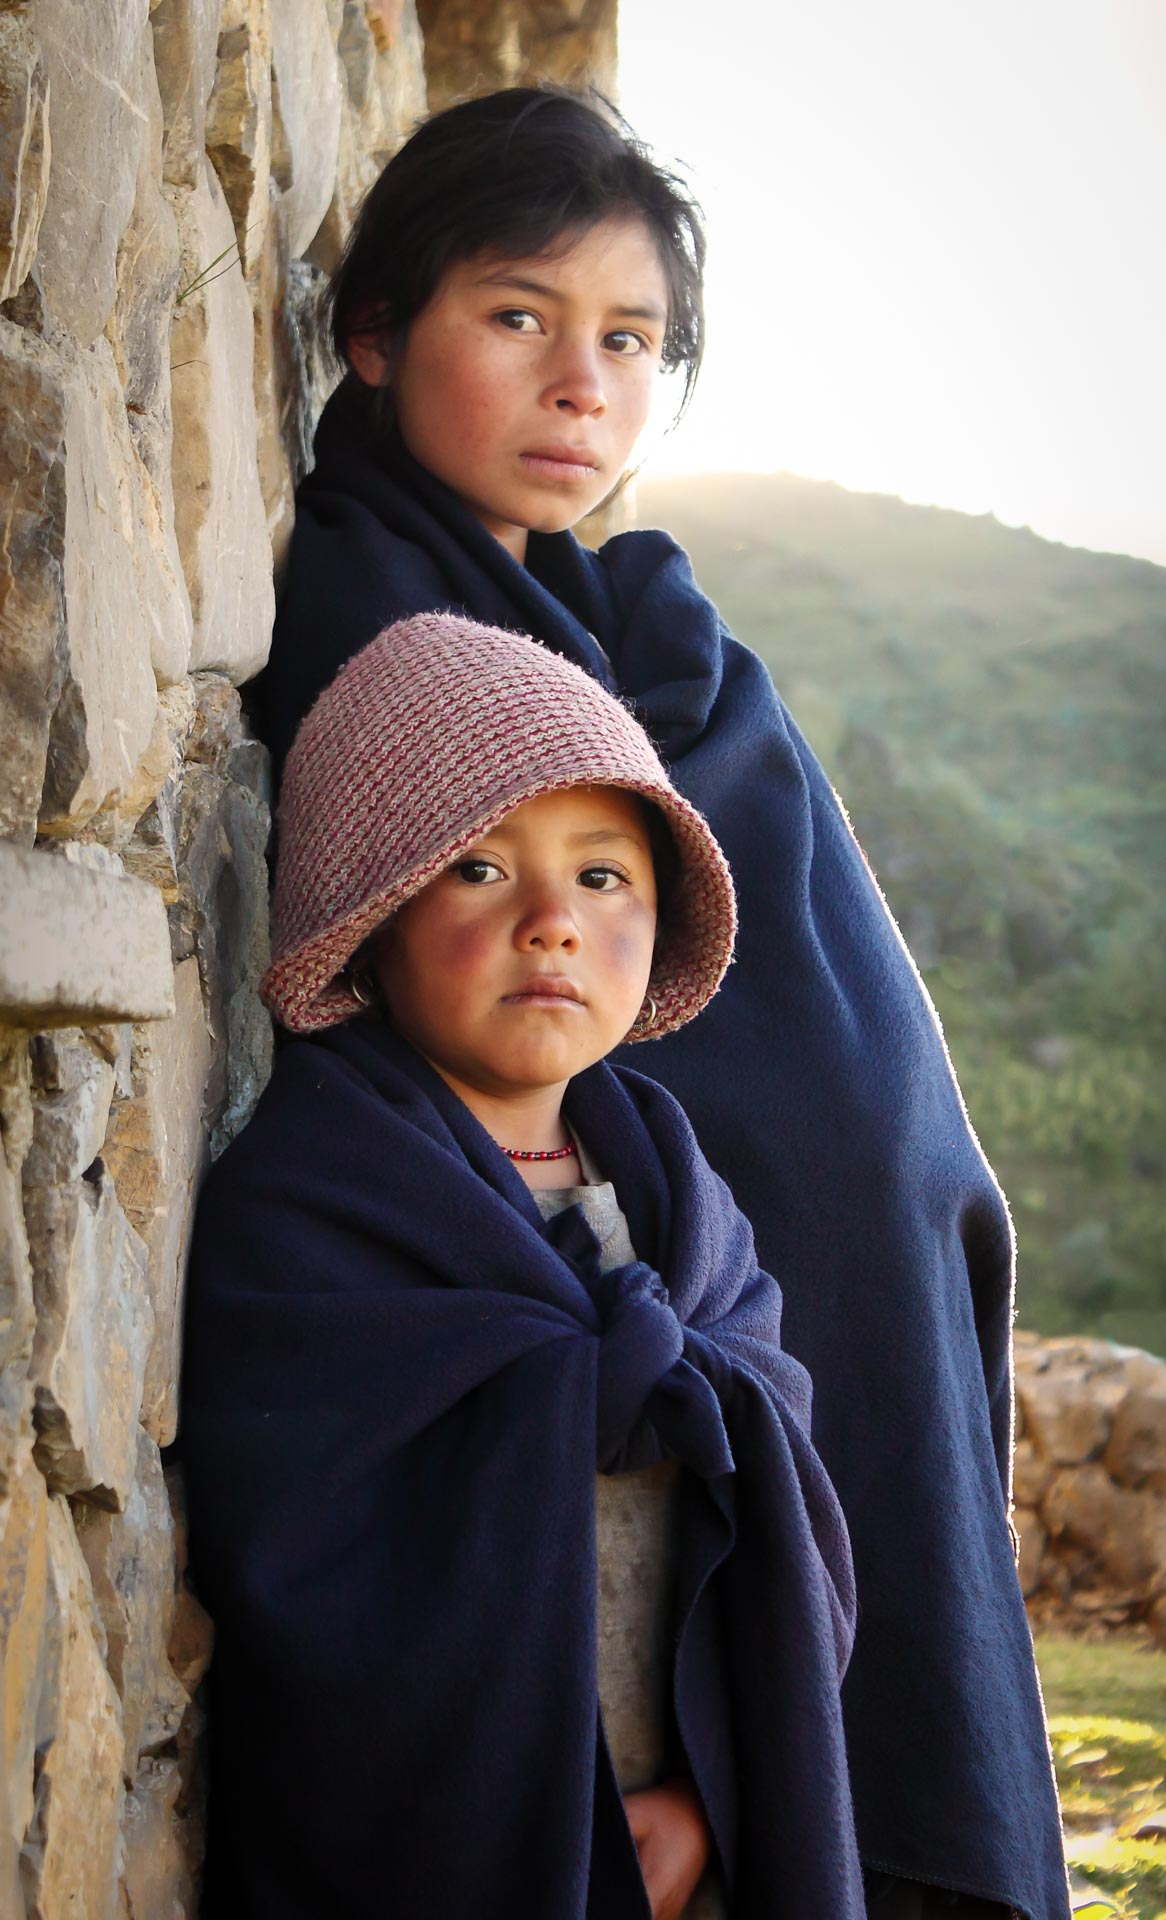 Children atop the Cuchumatanes mountain range. Guatemala.